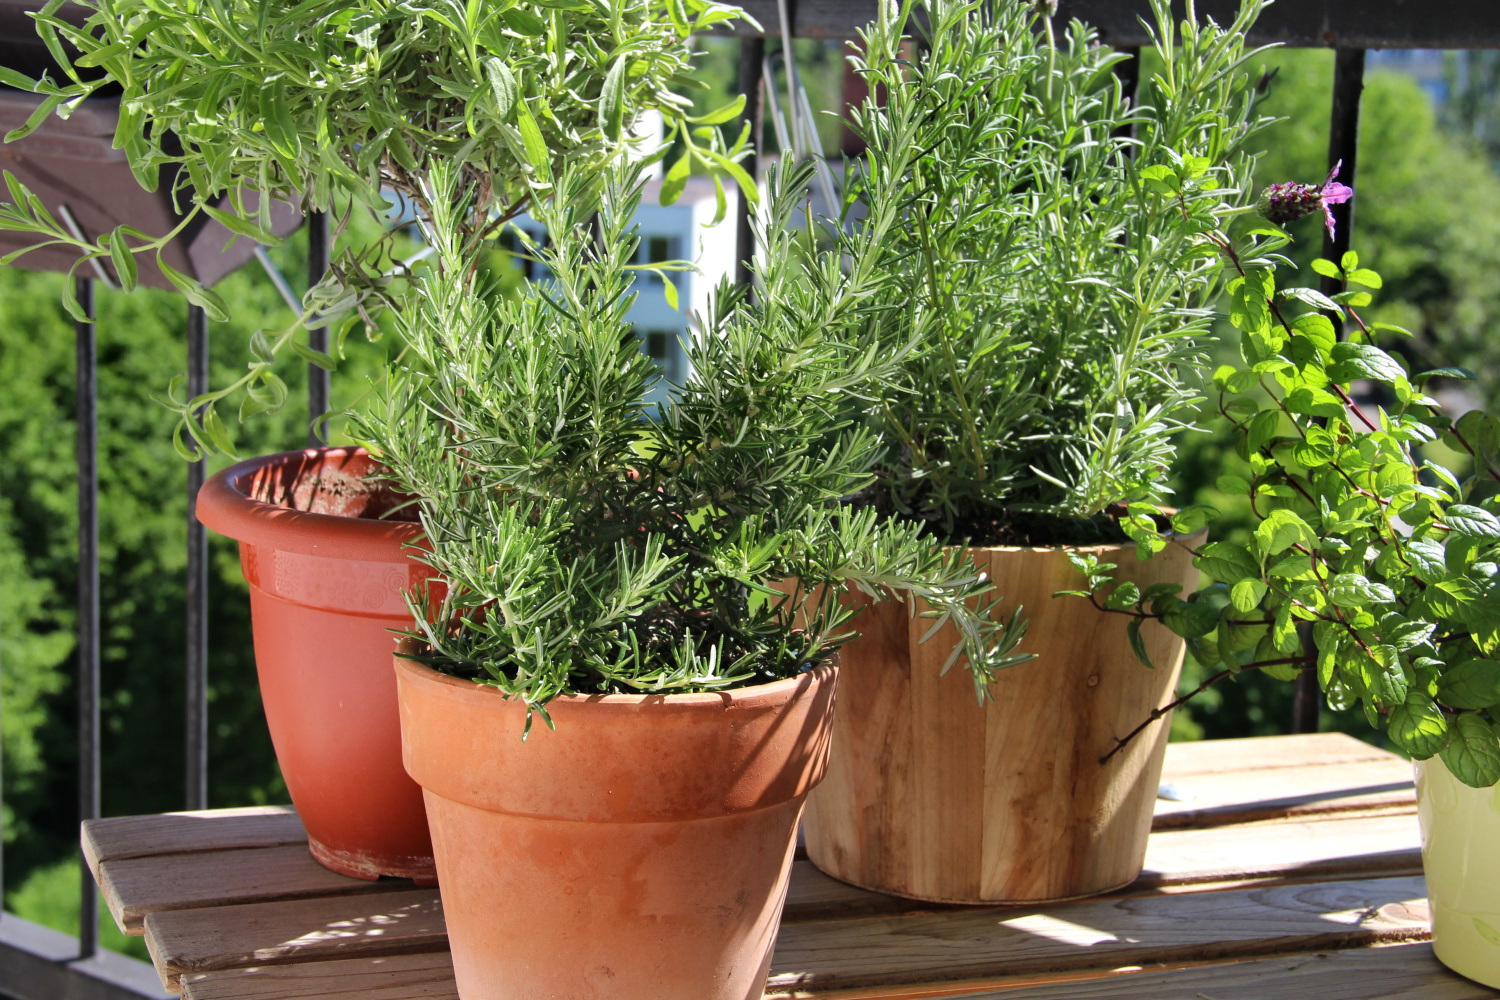 growing herbs in pots. Best pots to use outdoors to grow a container garden